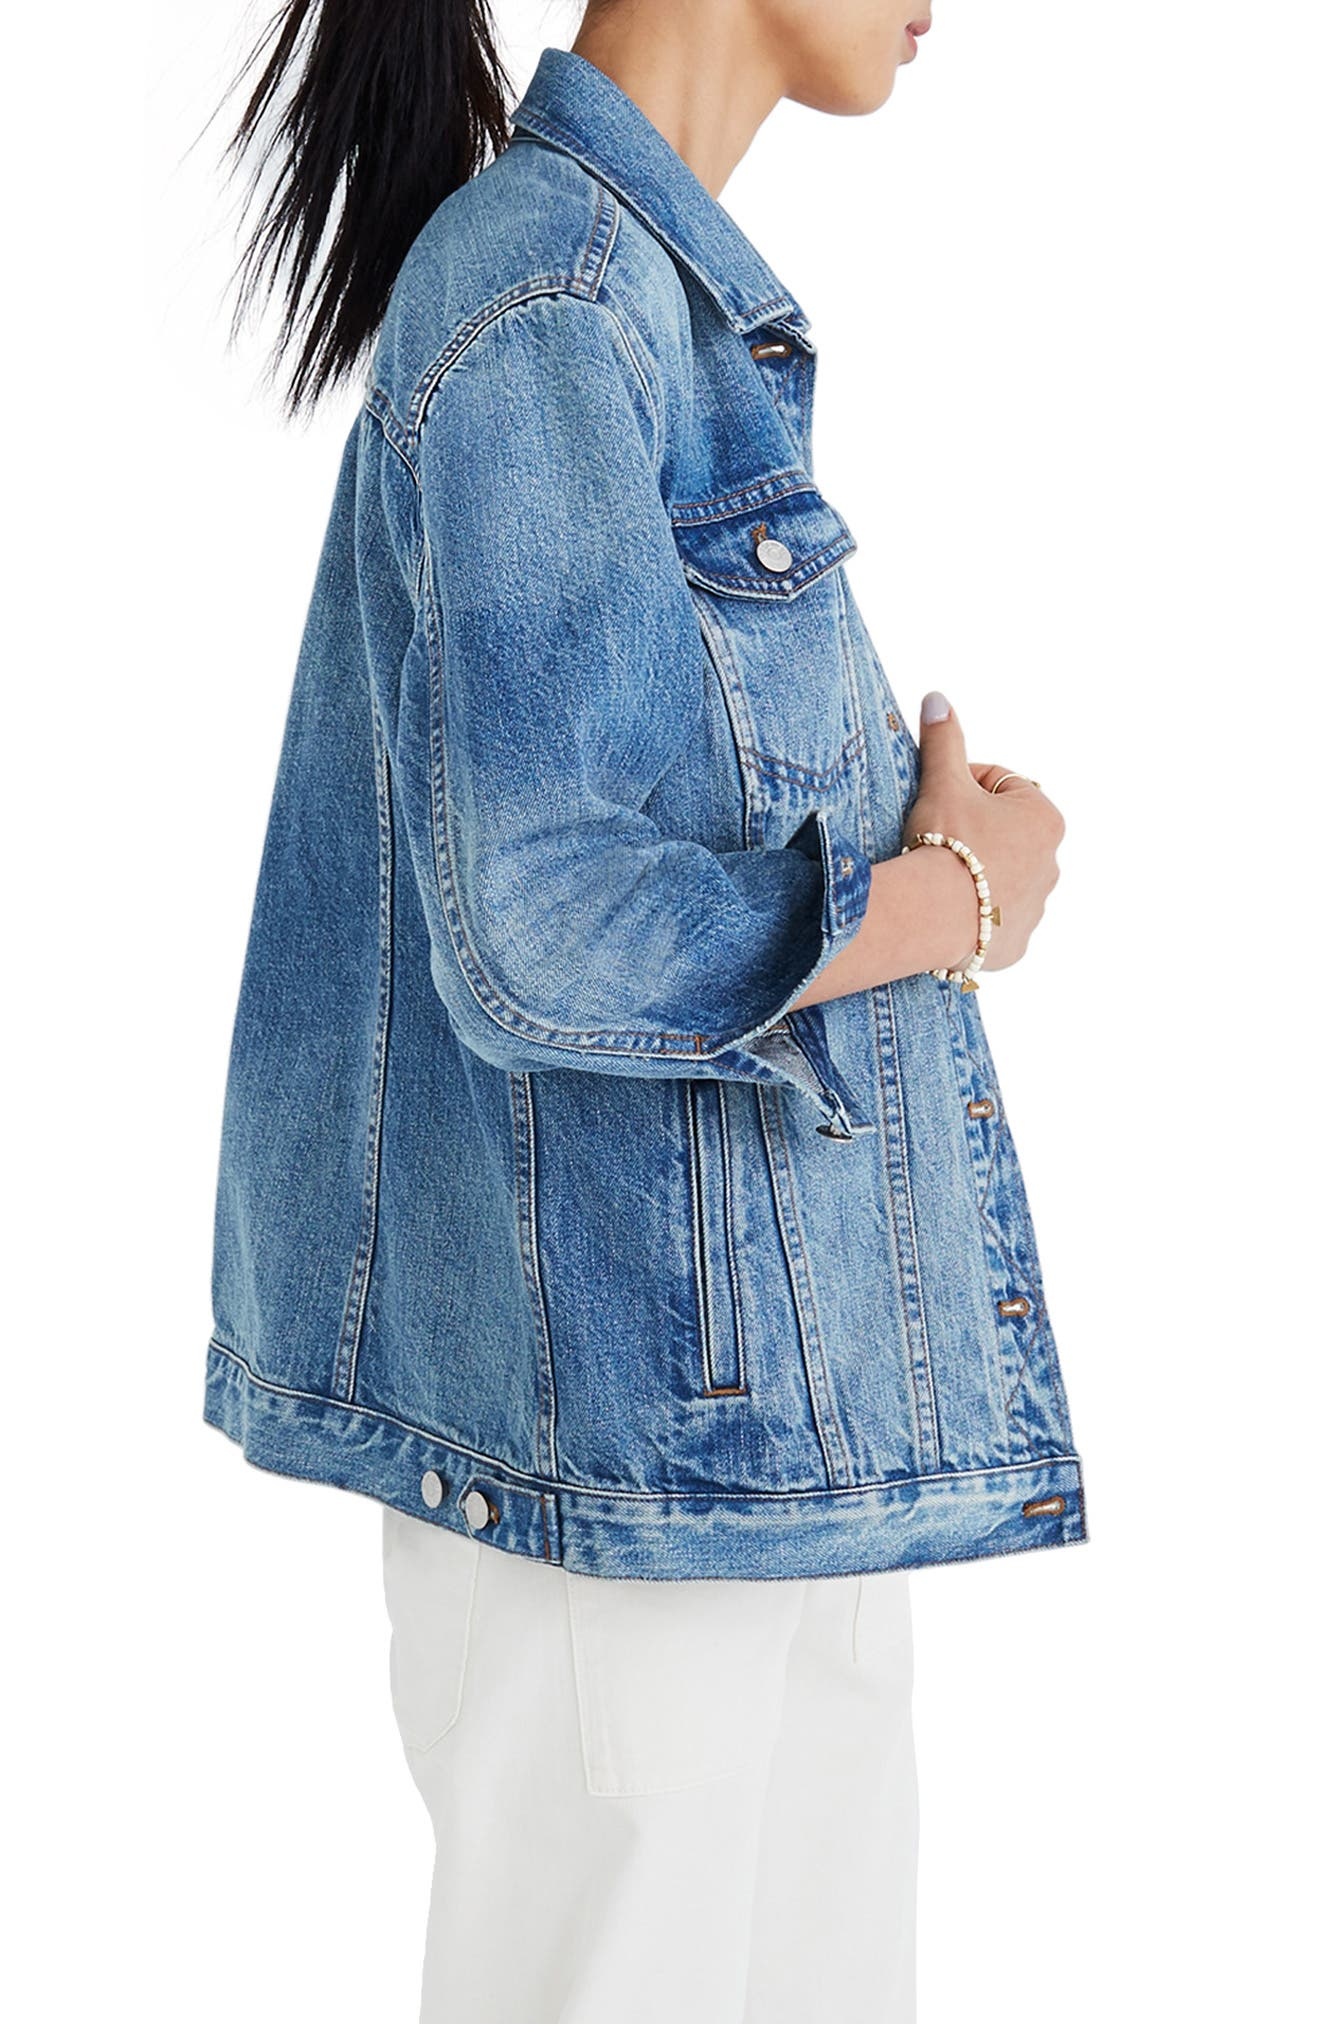 Oversize Denim Jacket,                             Alternate thumbnail 3, color,                             CAPSTONE WASH